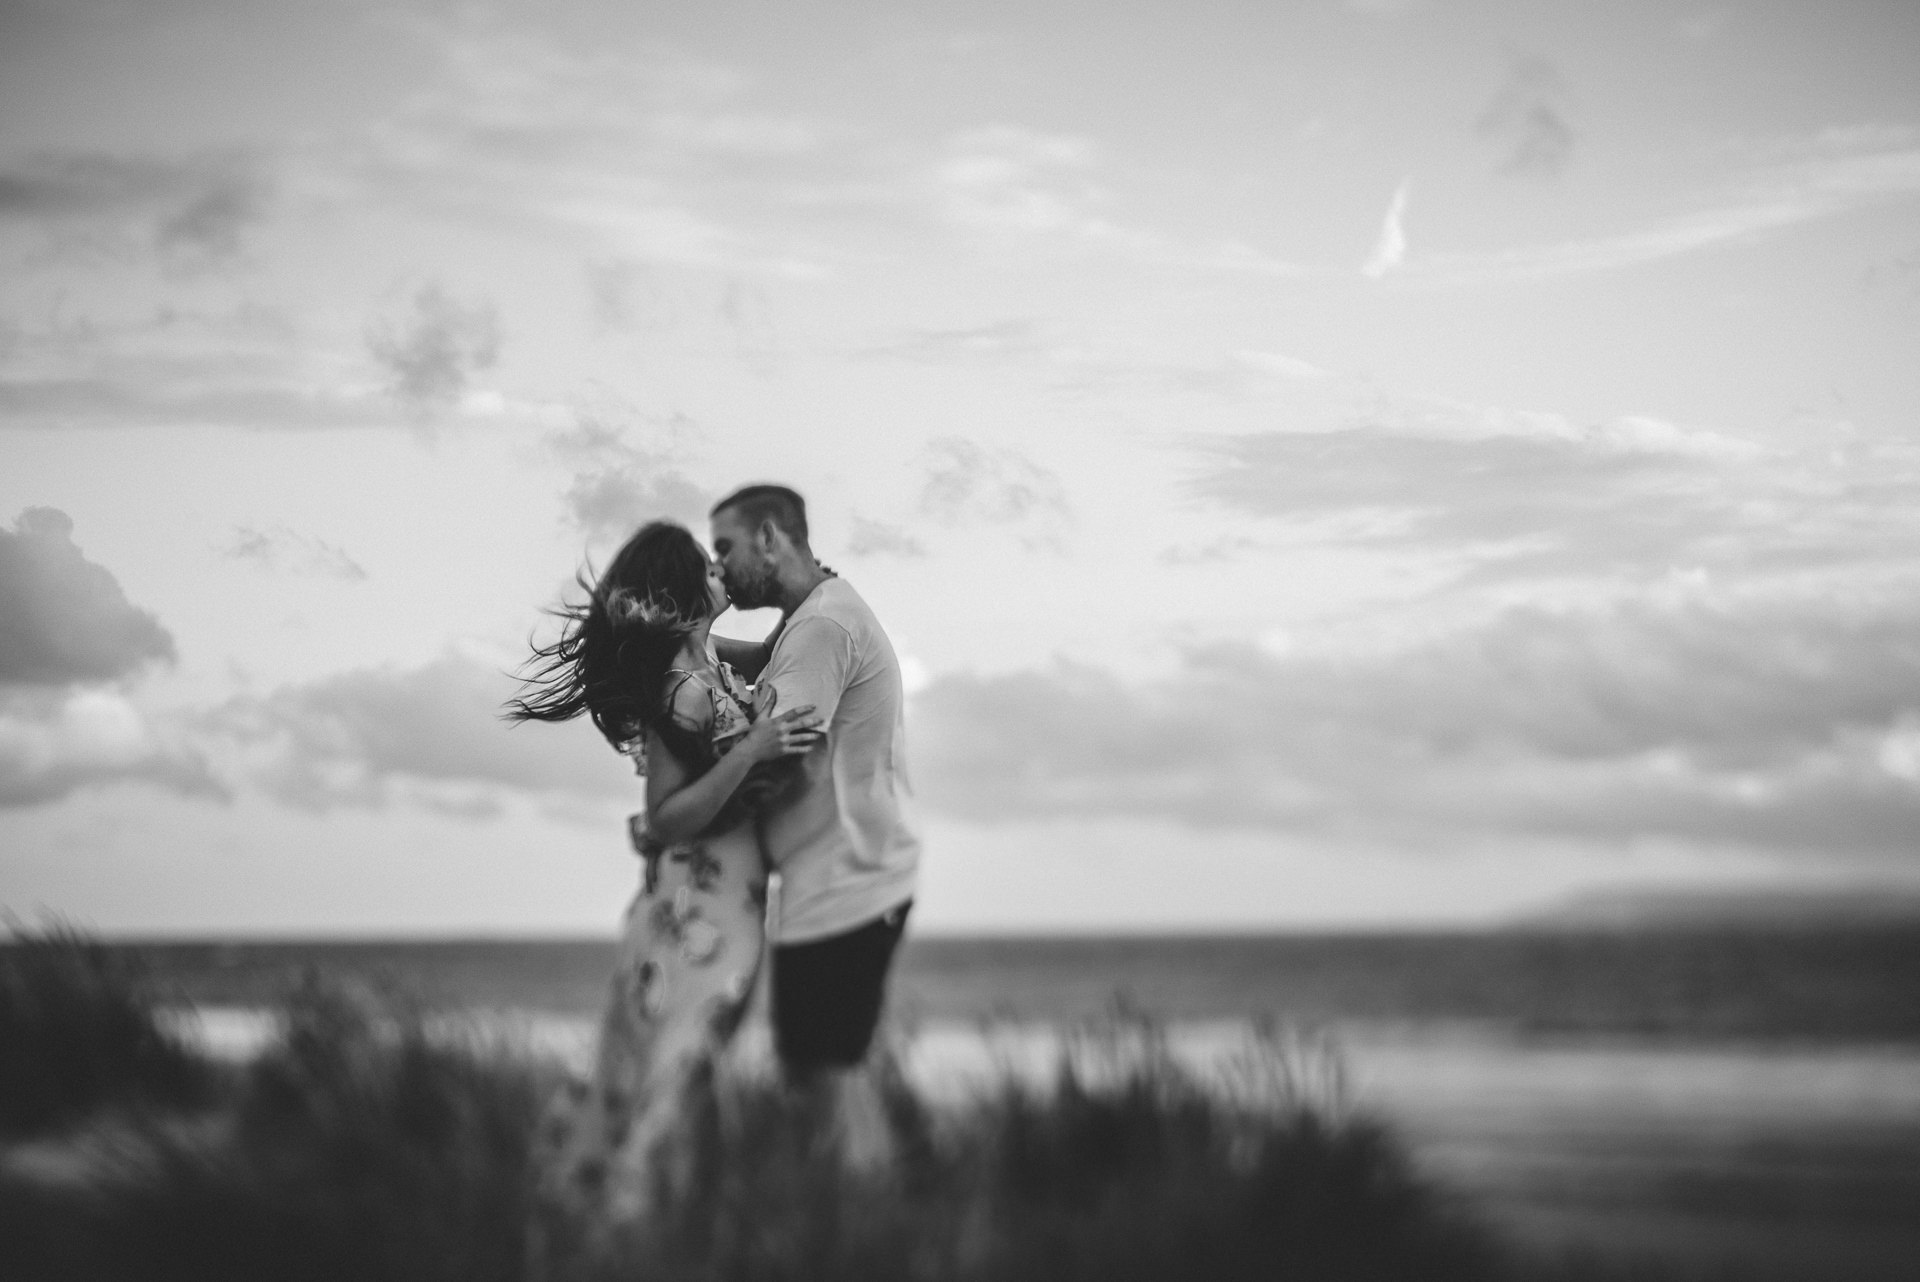 Couple kissing on a beach. Romantic Engagement photography ideas